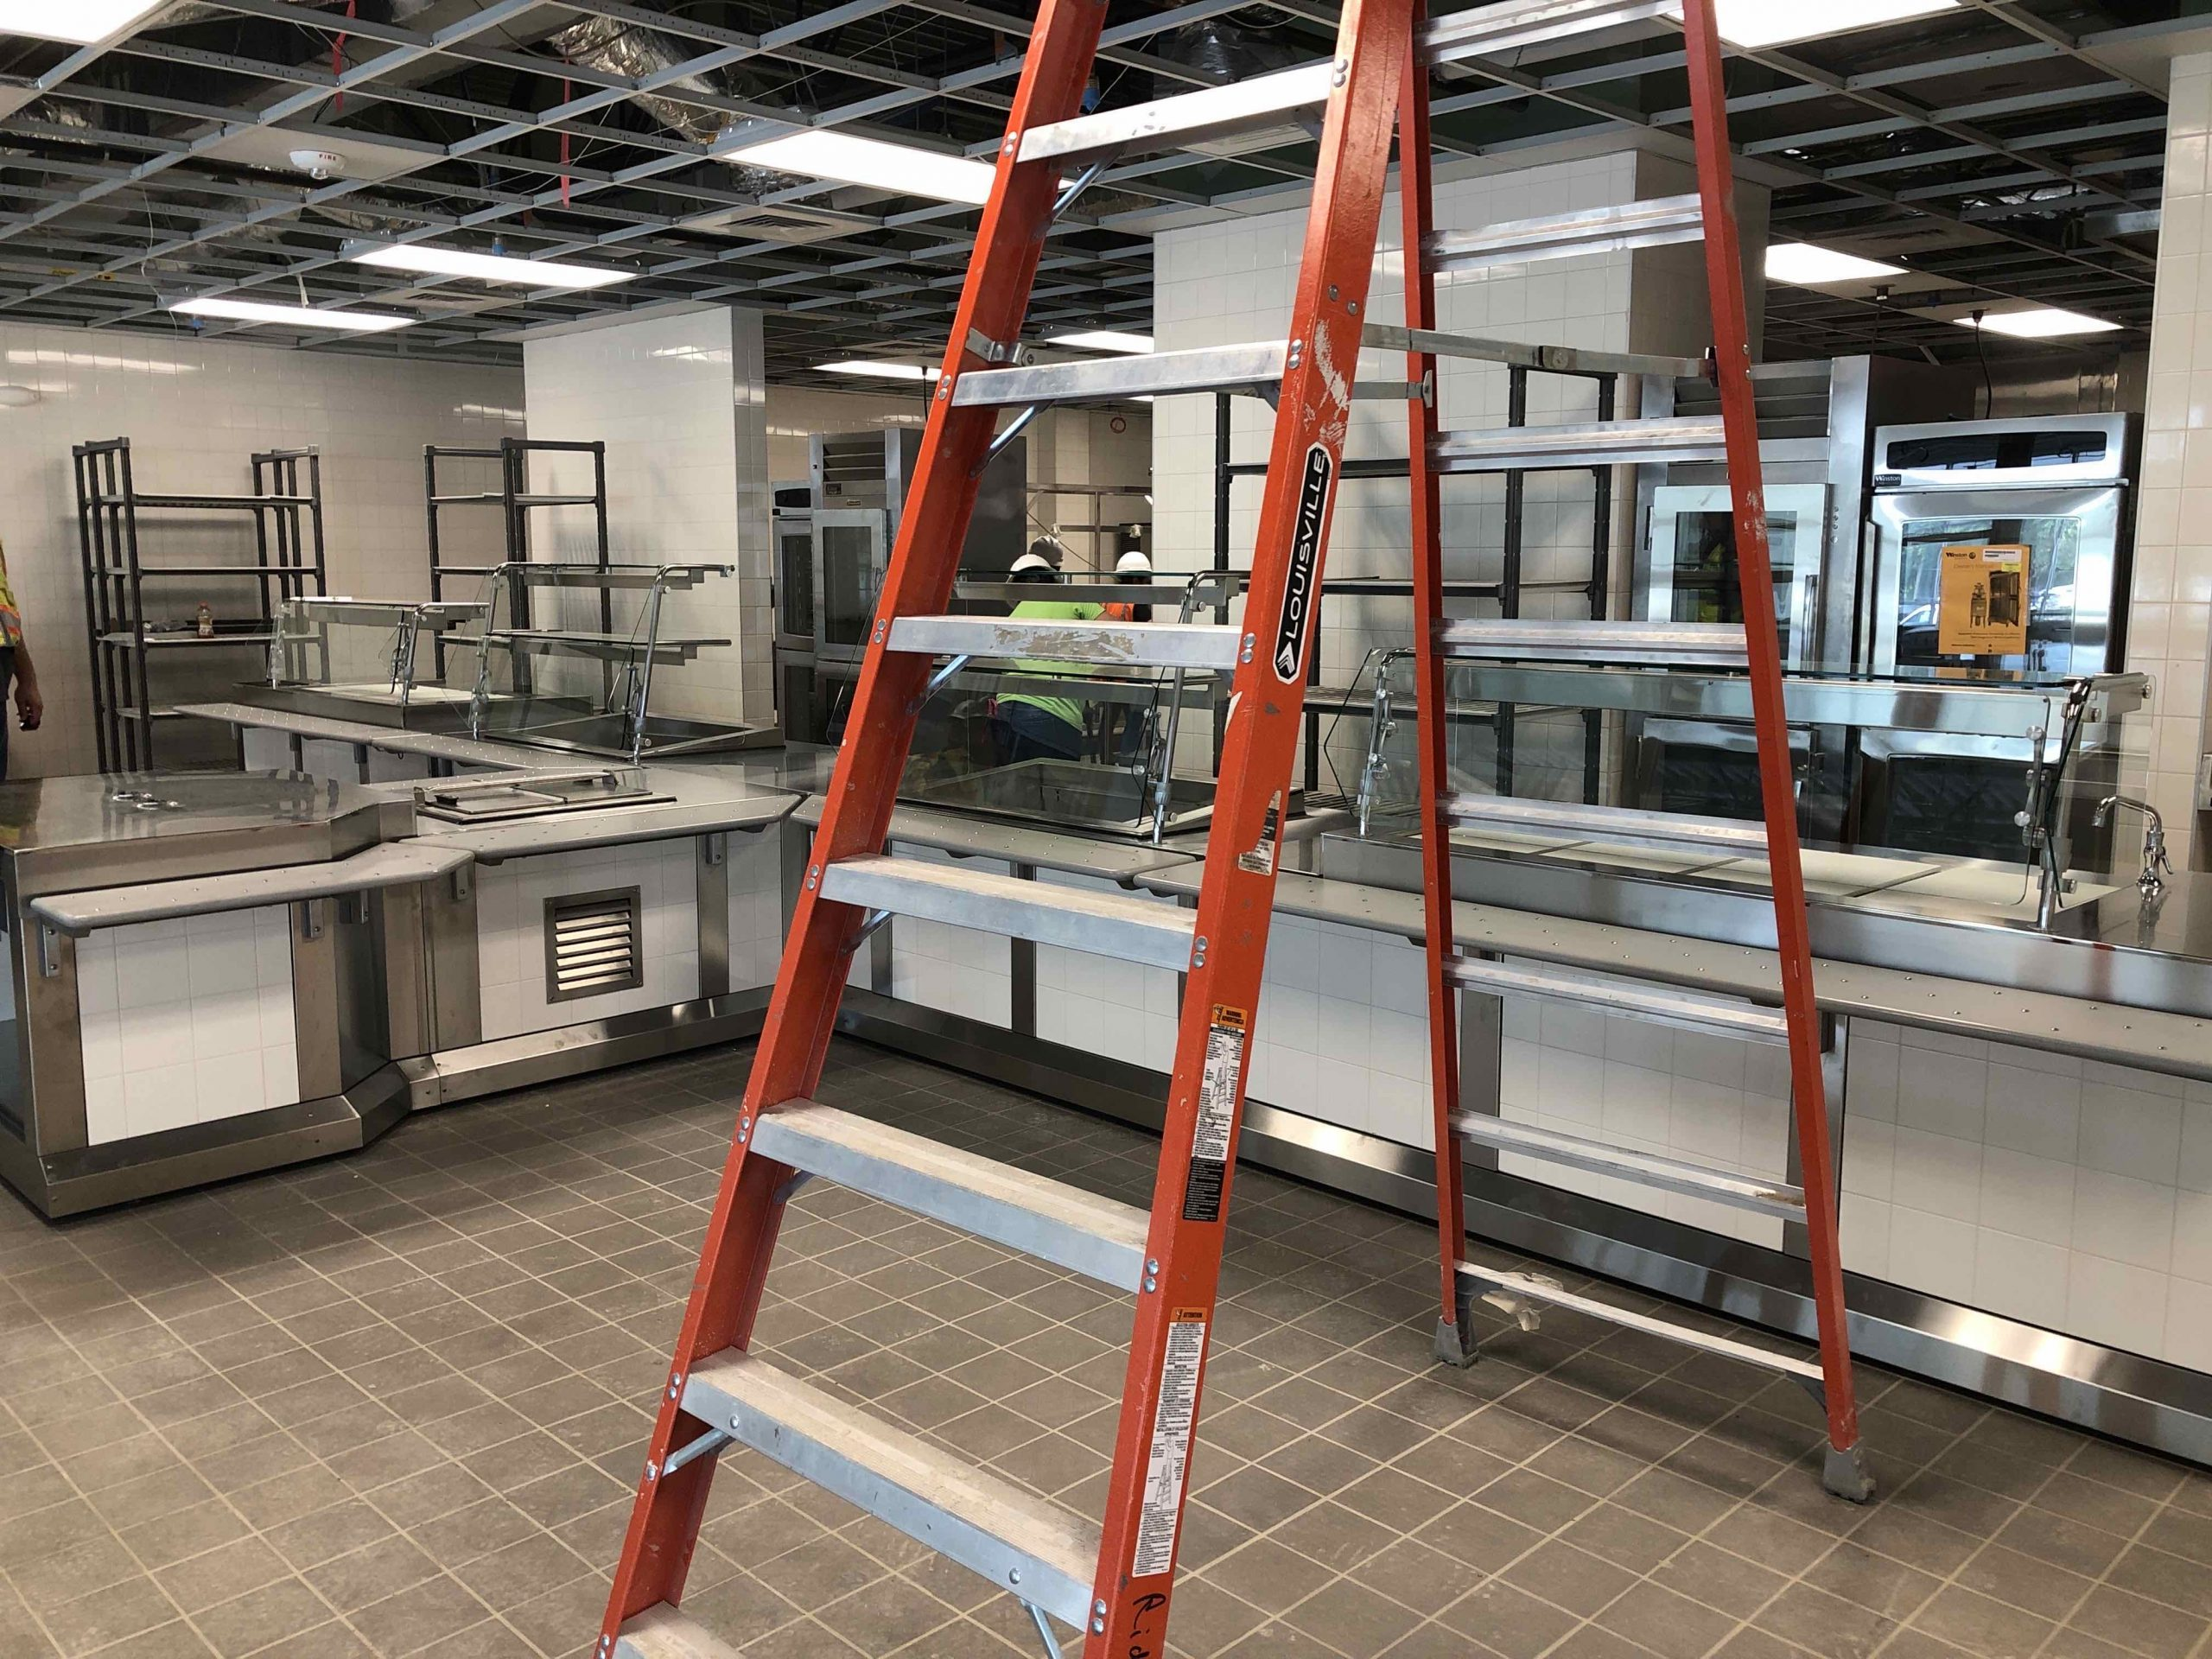 Cafeteria Nearing Completion image 1